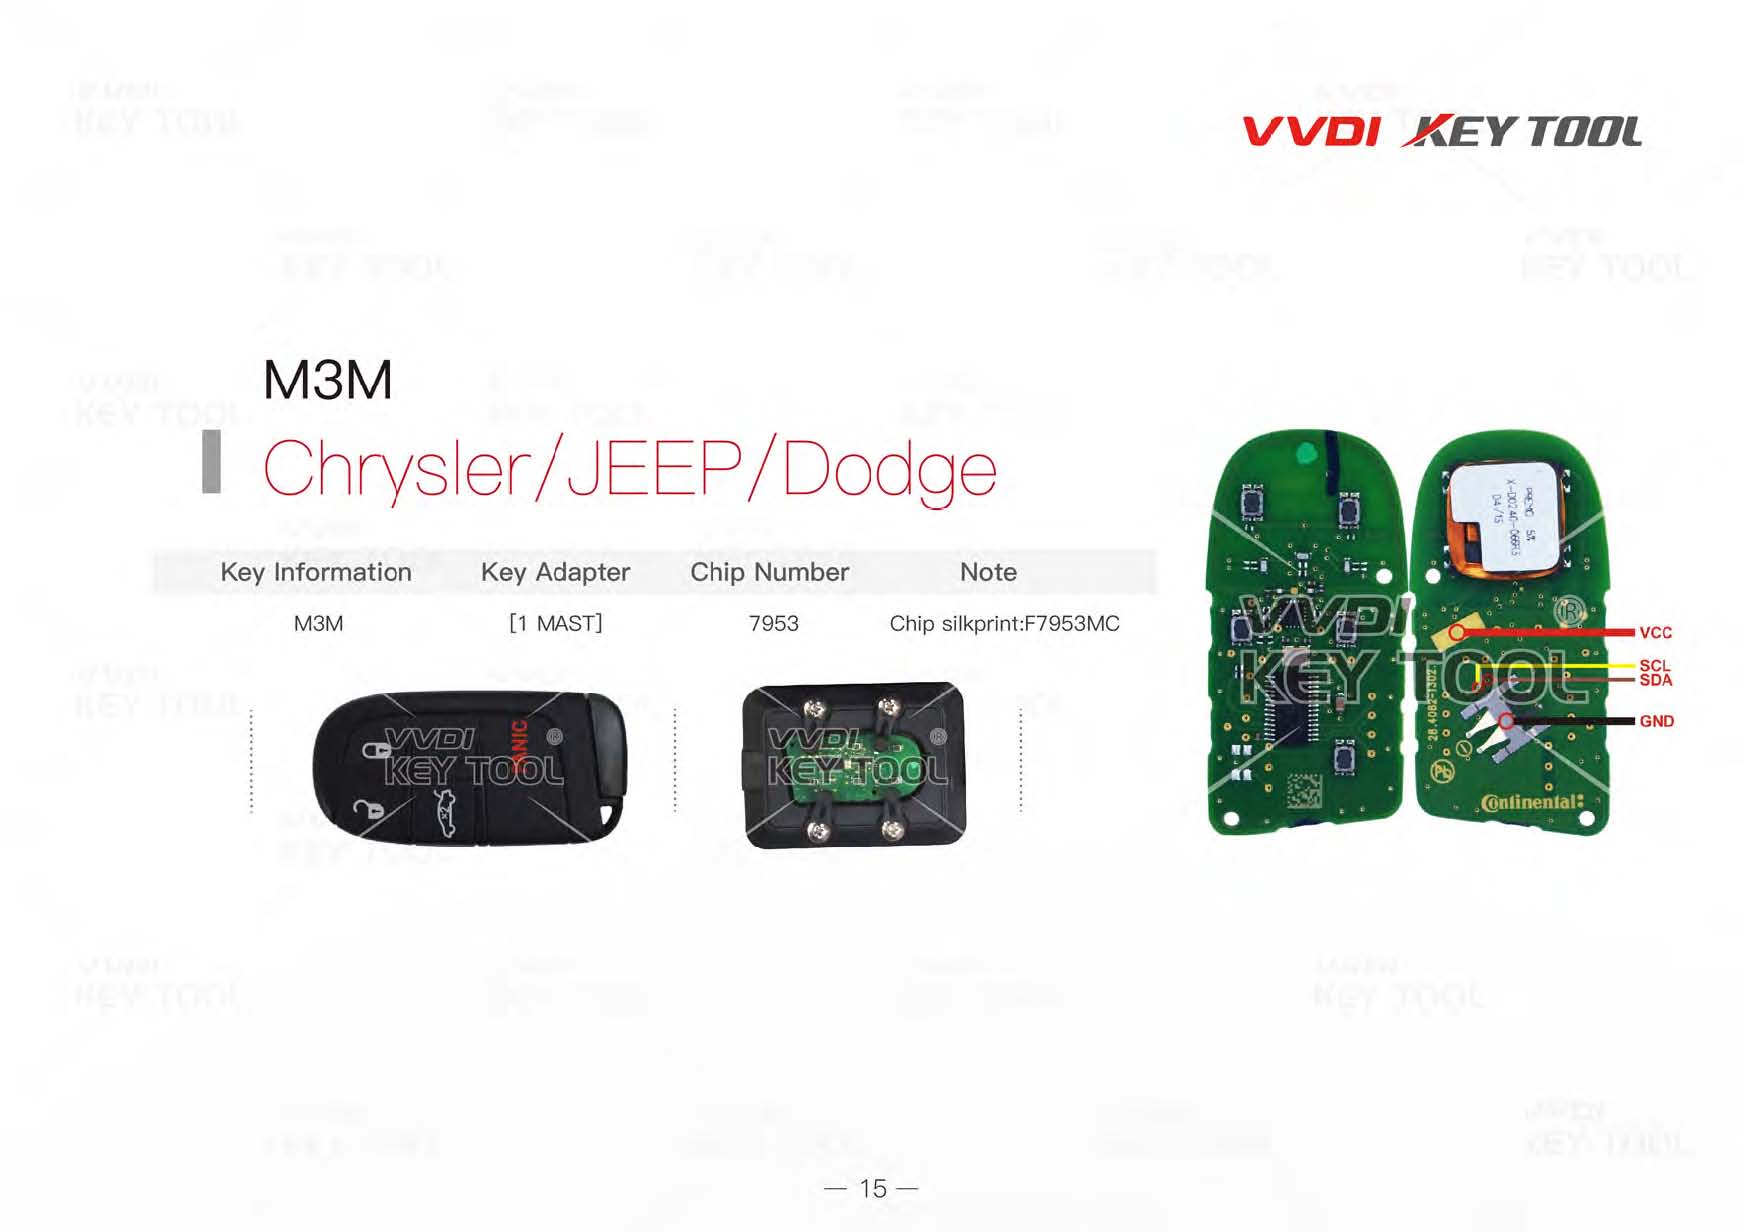 vvdi-key-tool-renew-diagram-15